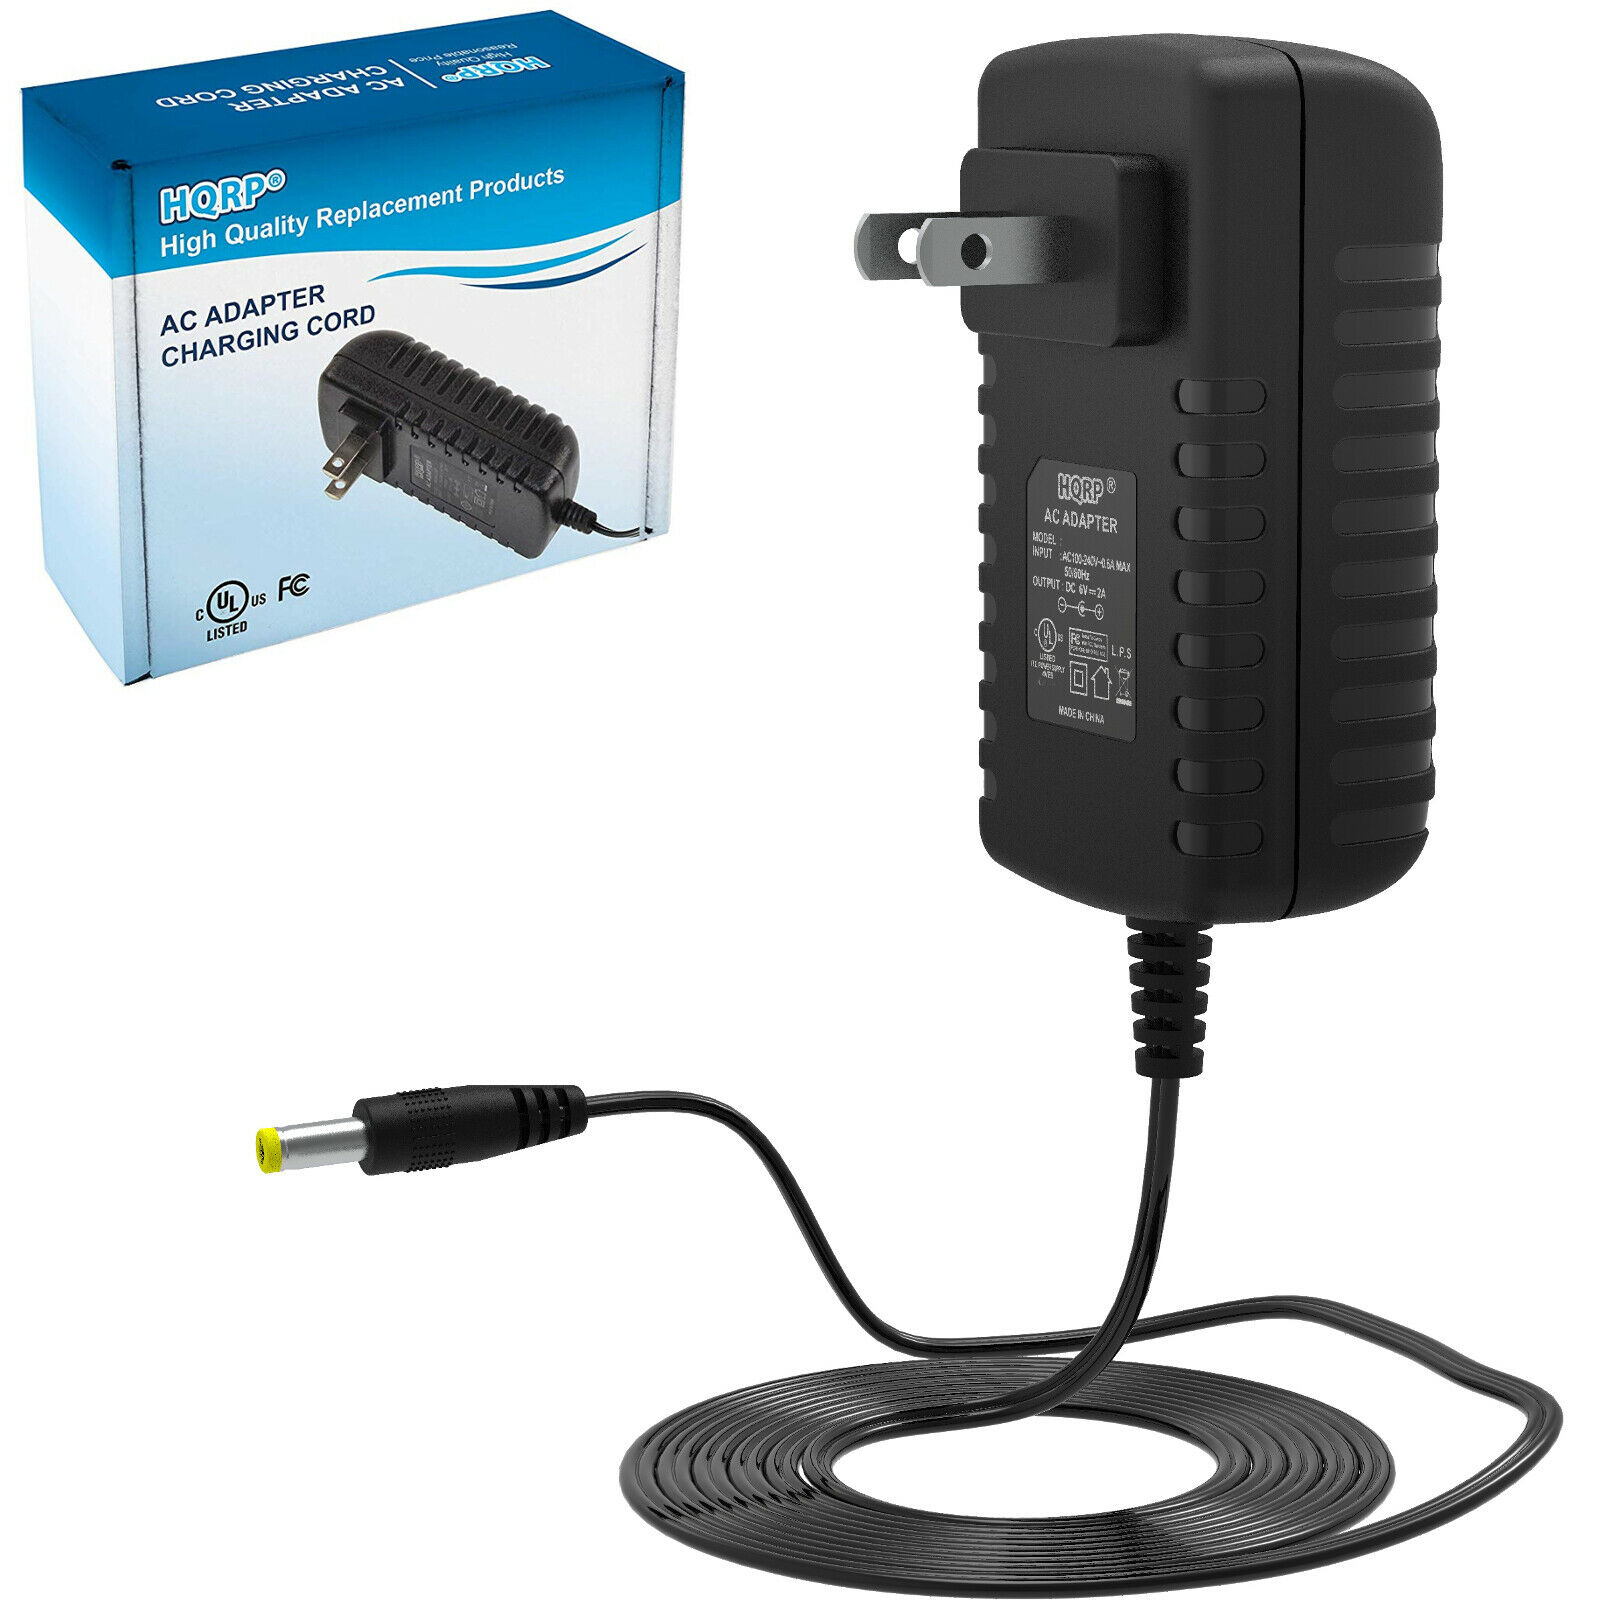 HQRP 6V AC Adapter for CVS 306409, 271245 271244 344532 Blood Pressure  Monitor